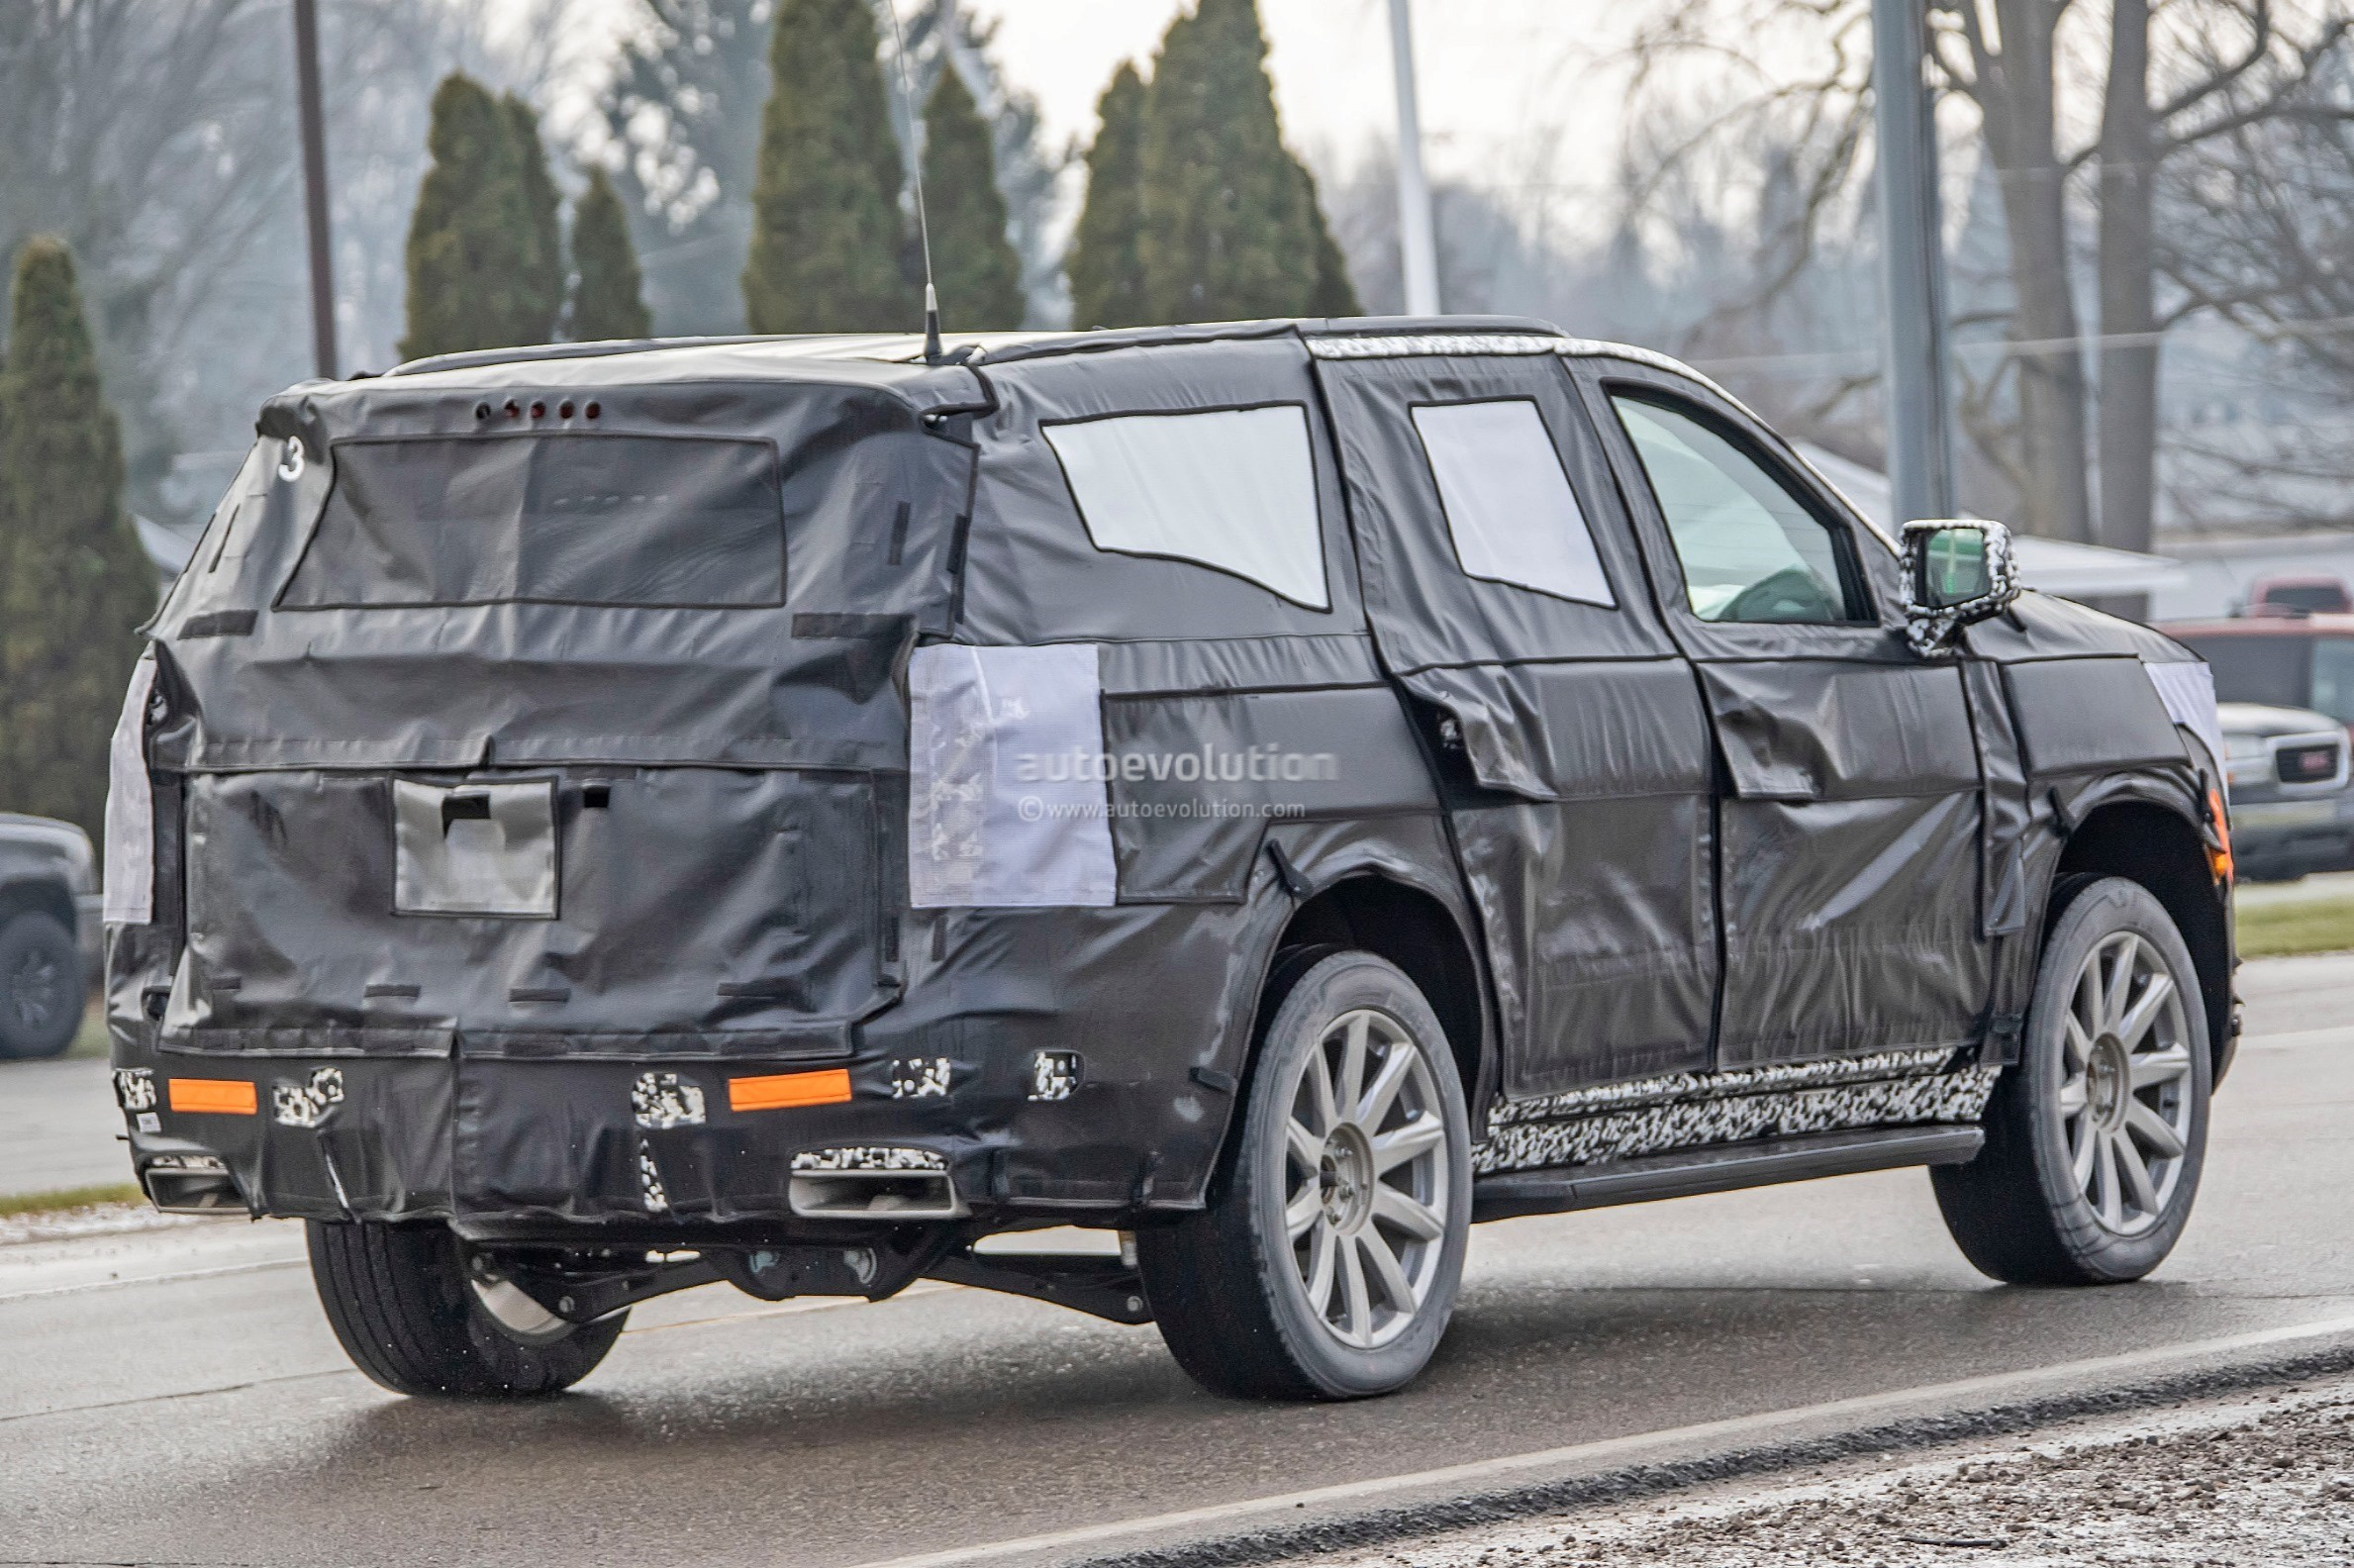 202 - [Cadillac] Escalade V 2020-cadillac-escalade-spied-with-makeshift-dodge-ram-crosshair-grille_28